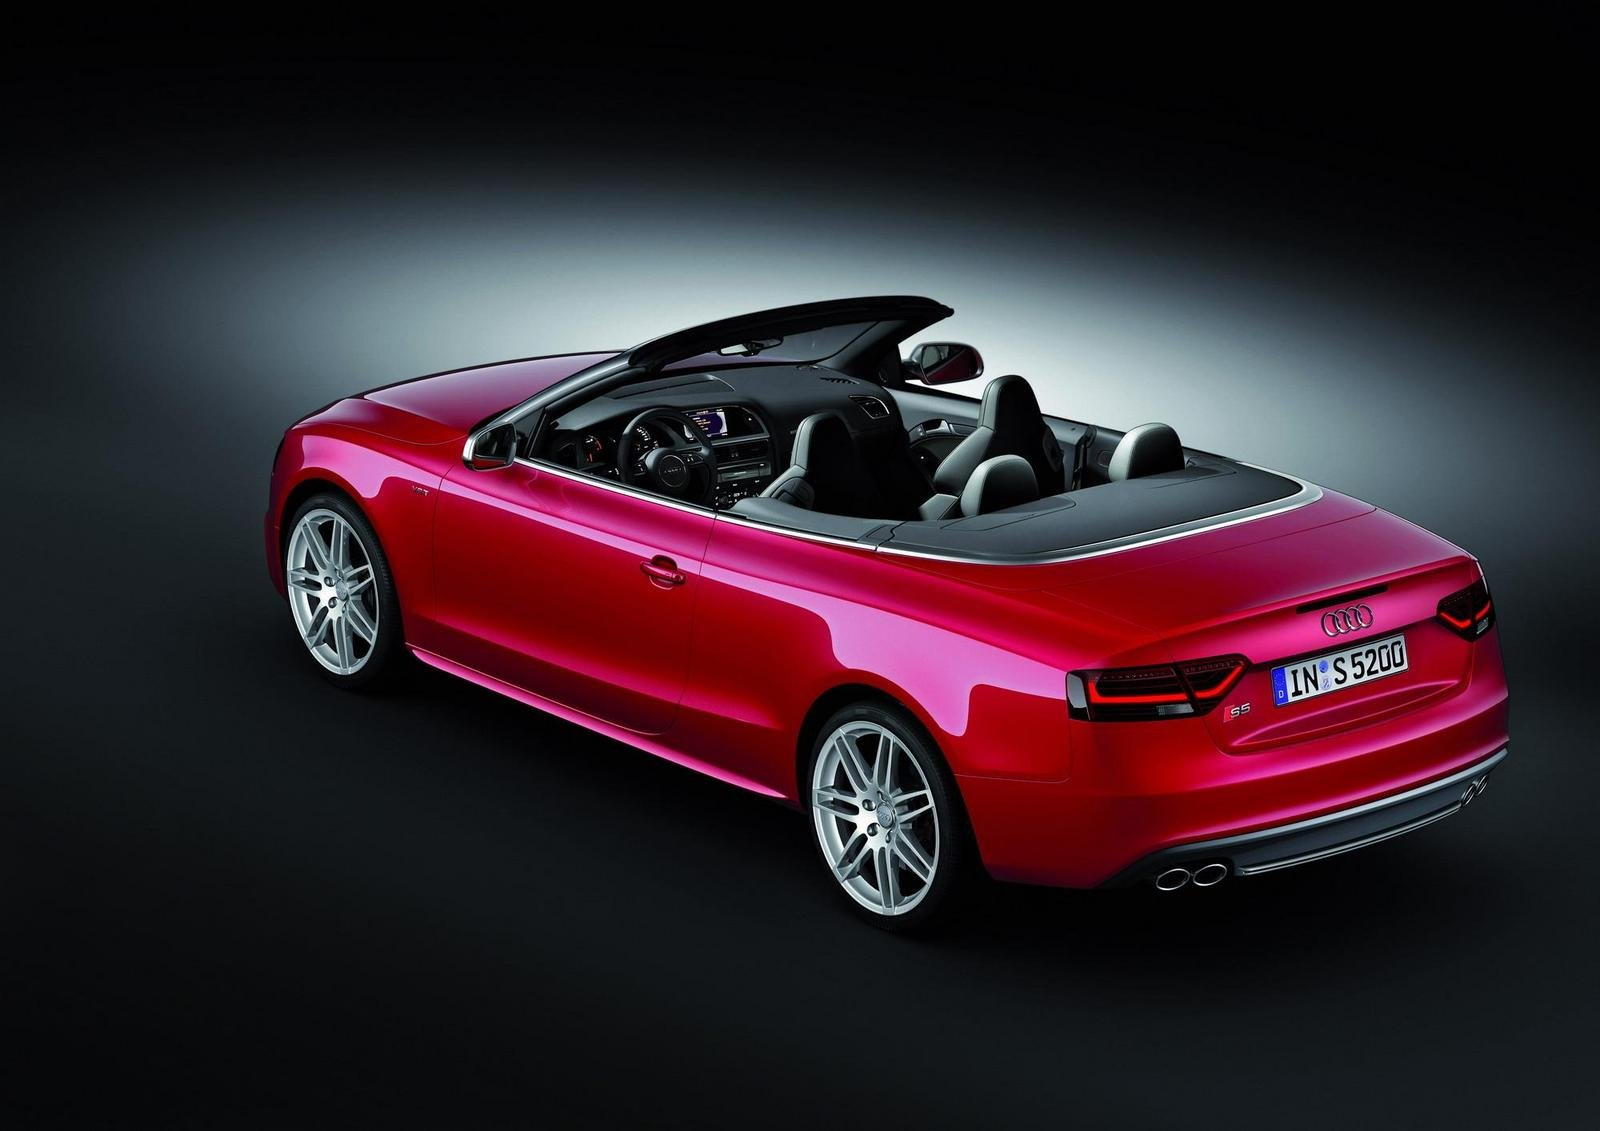 http://pictures.topspeed.com/IMG/crop/201107/audi-s5-convertible-10_1600x0w.jpg